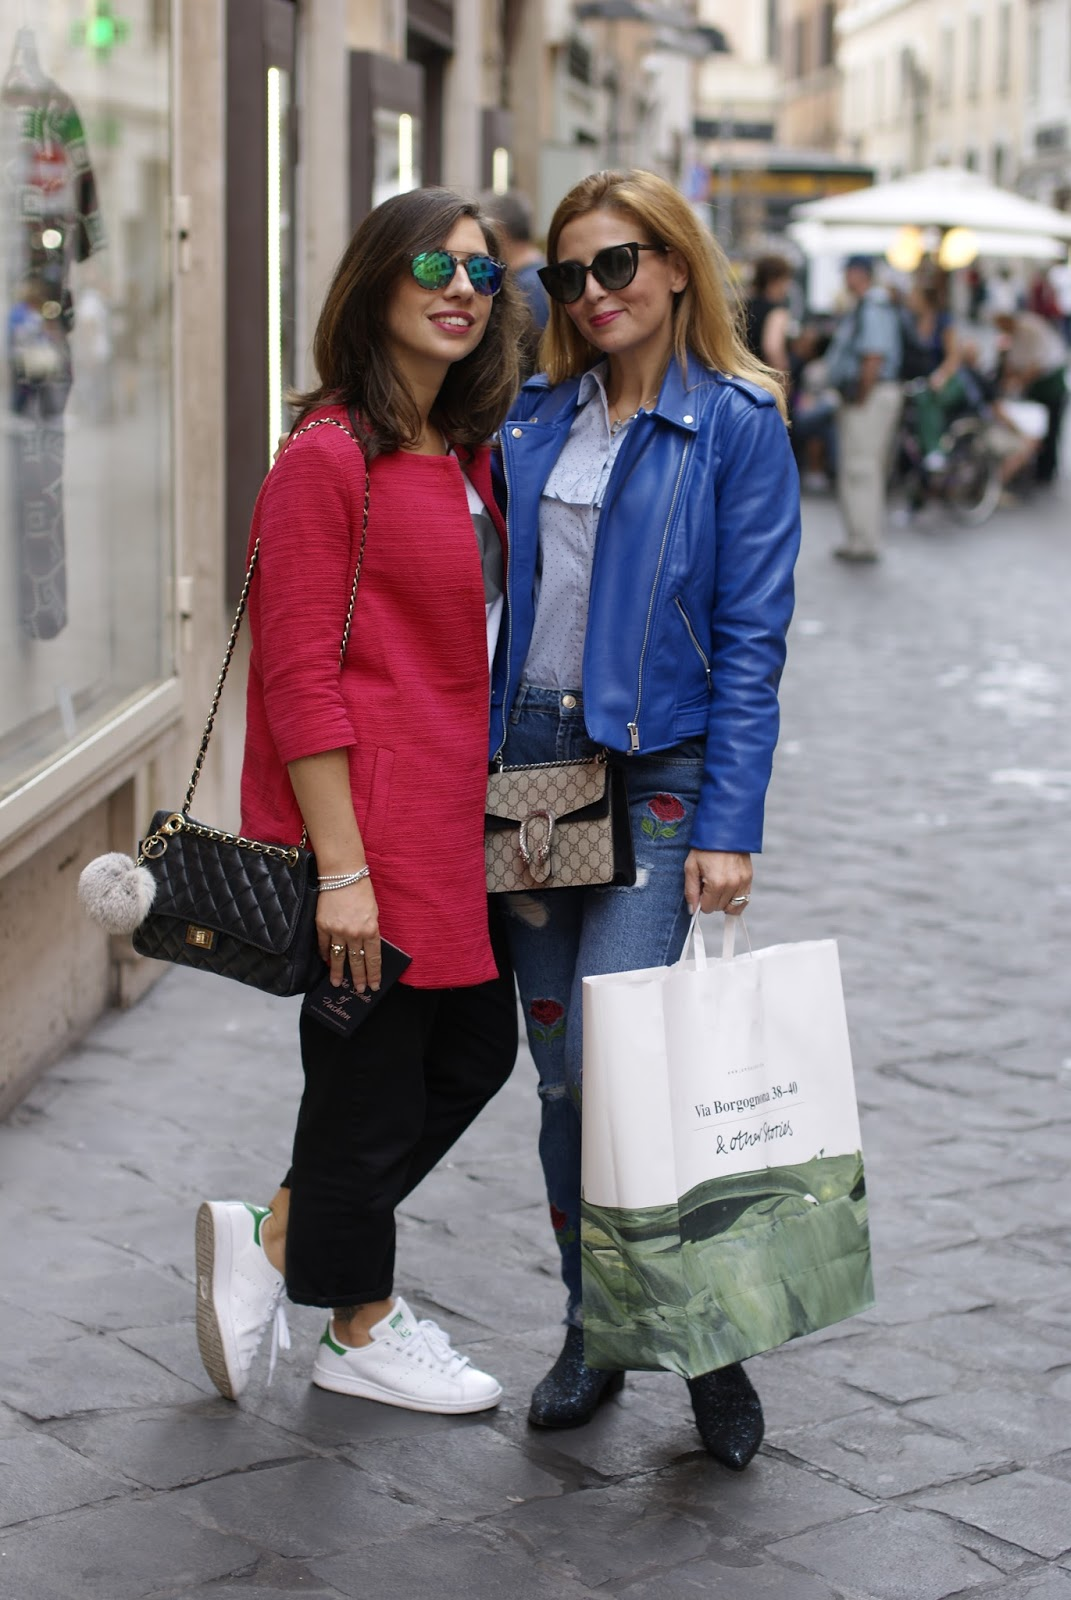 Fashion Bloggers meetup in Rome: Iolanda e Valentina on Fashion and Cookies fashion blog, fashion blogger style